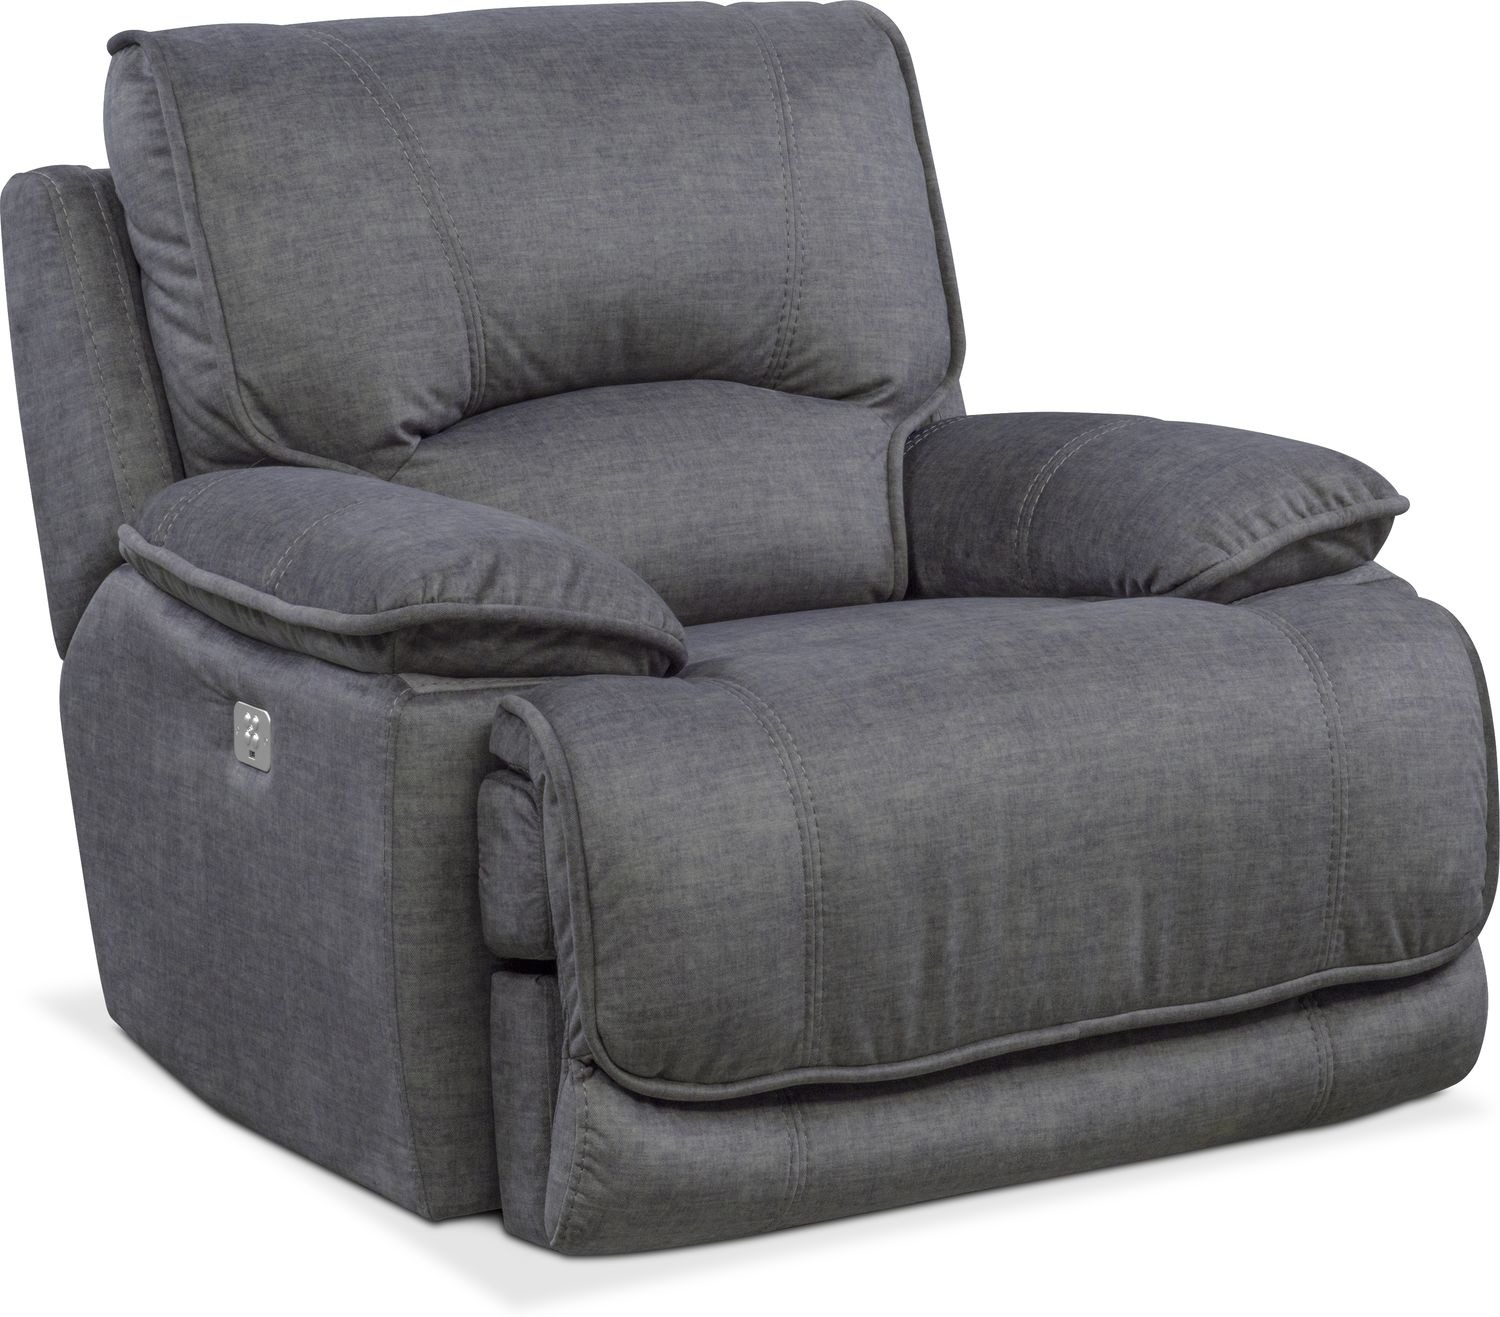 Mario Power Recliner | Value City Furniture and Mattresses